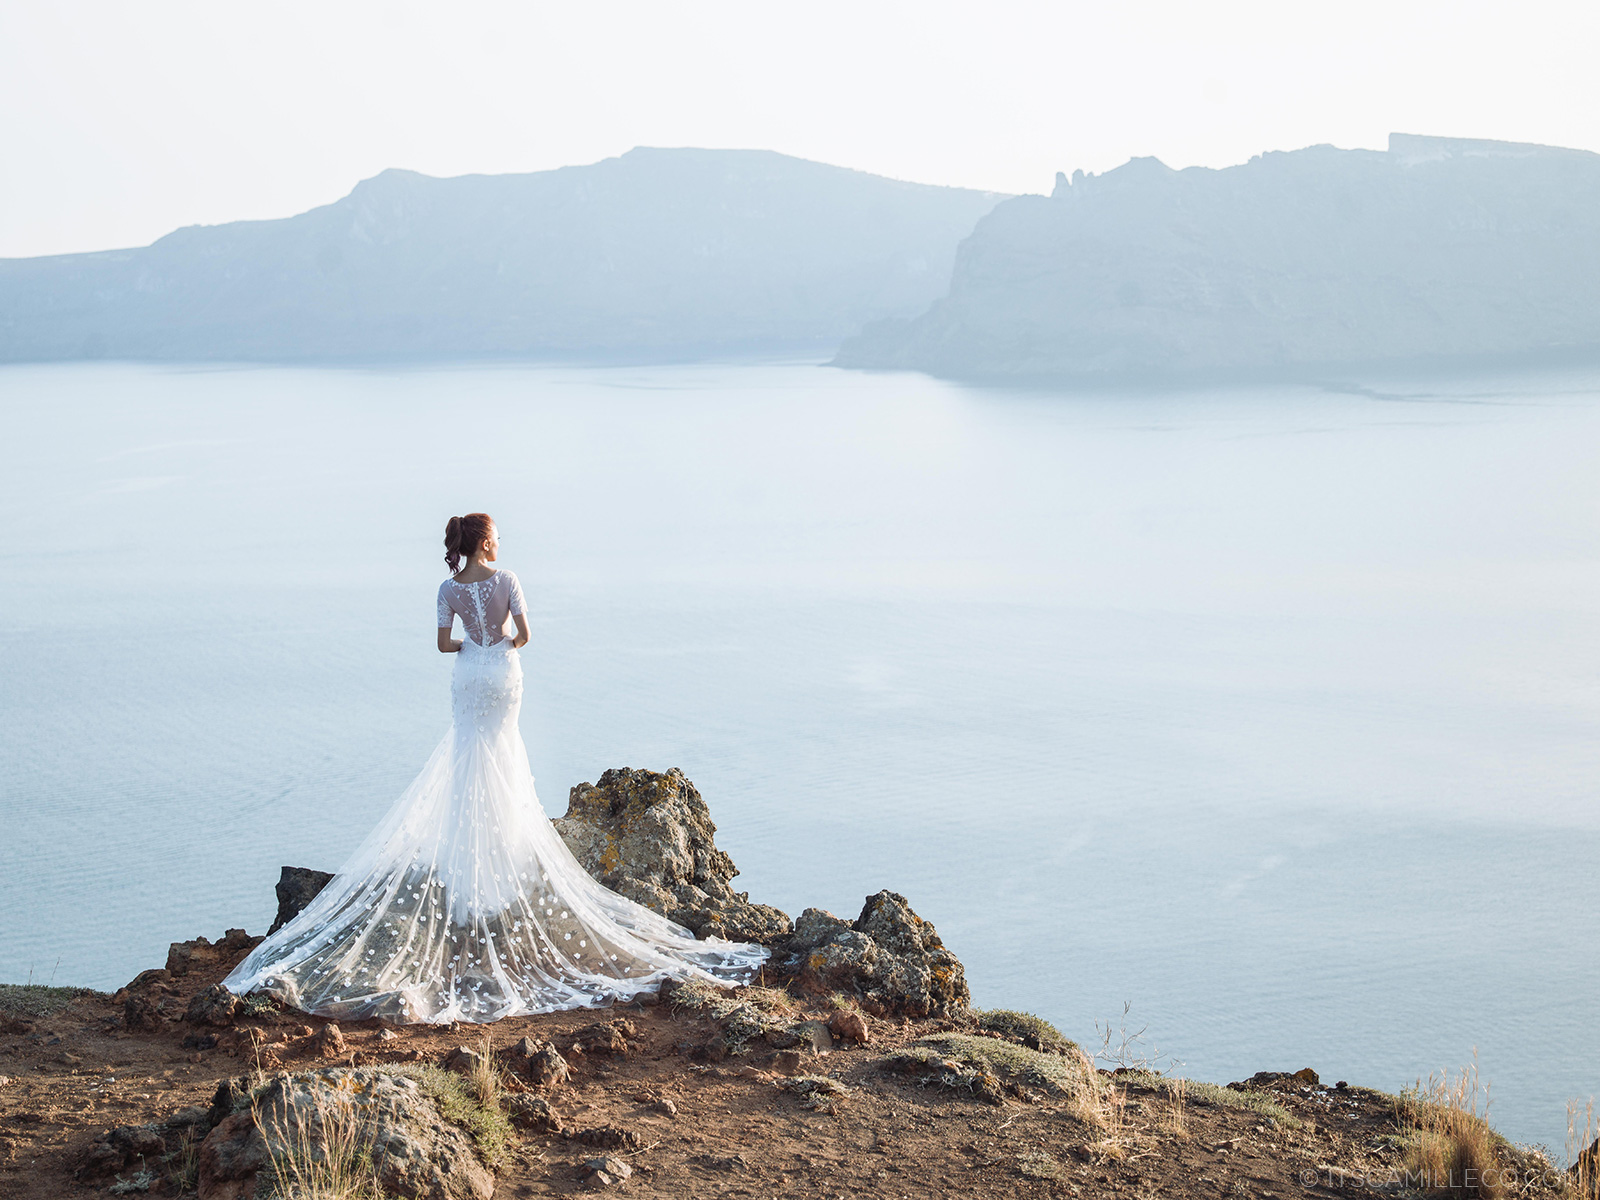 Vera Wang Camilla gown at Sunrise Greece, Santorini - www.itscamilleco.com